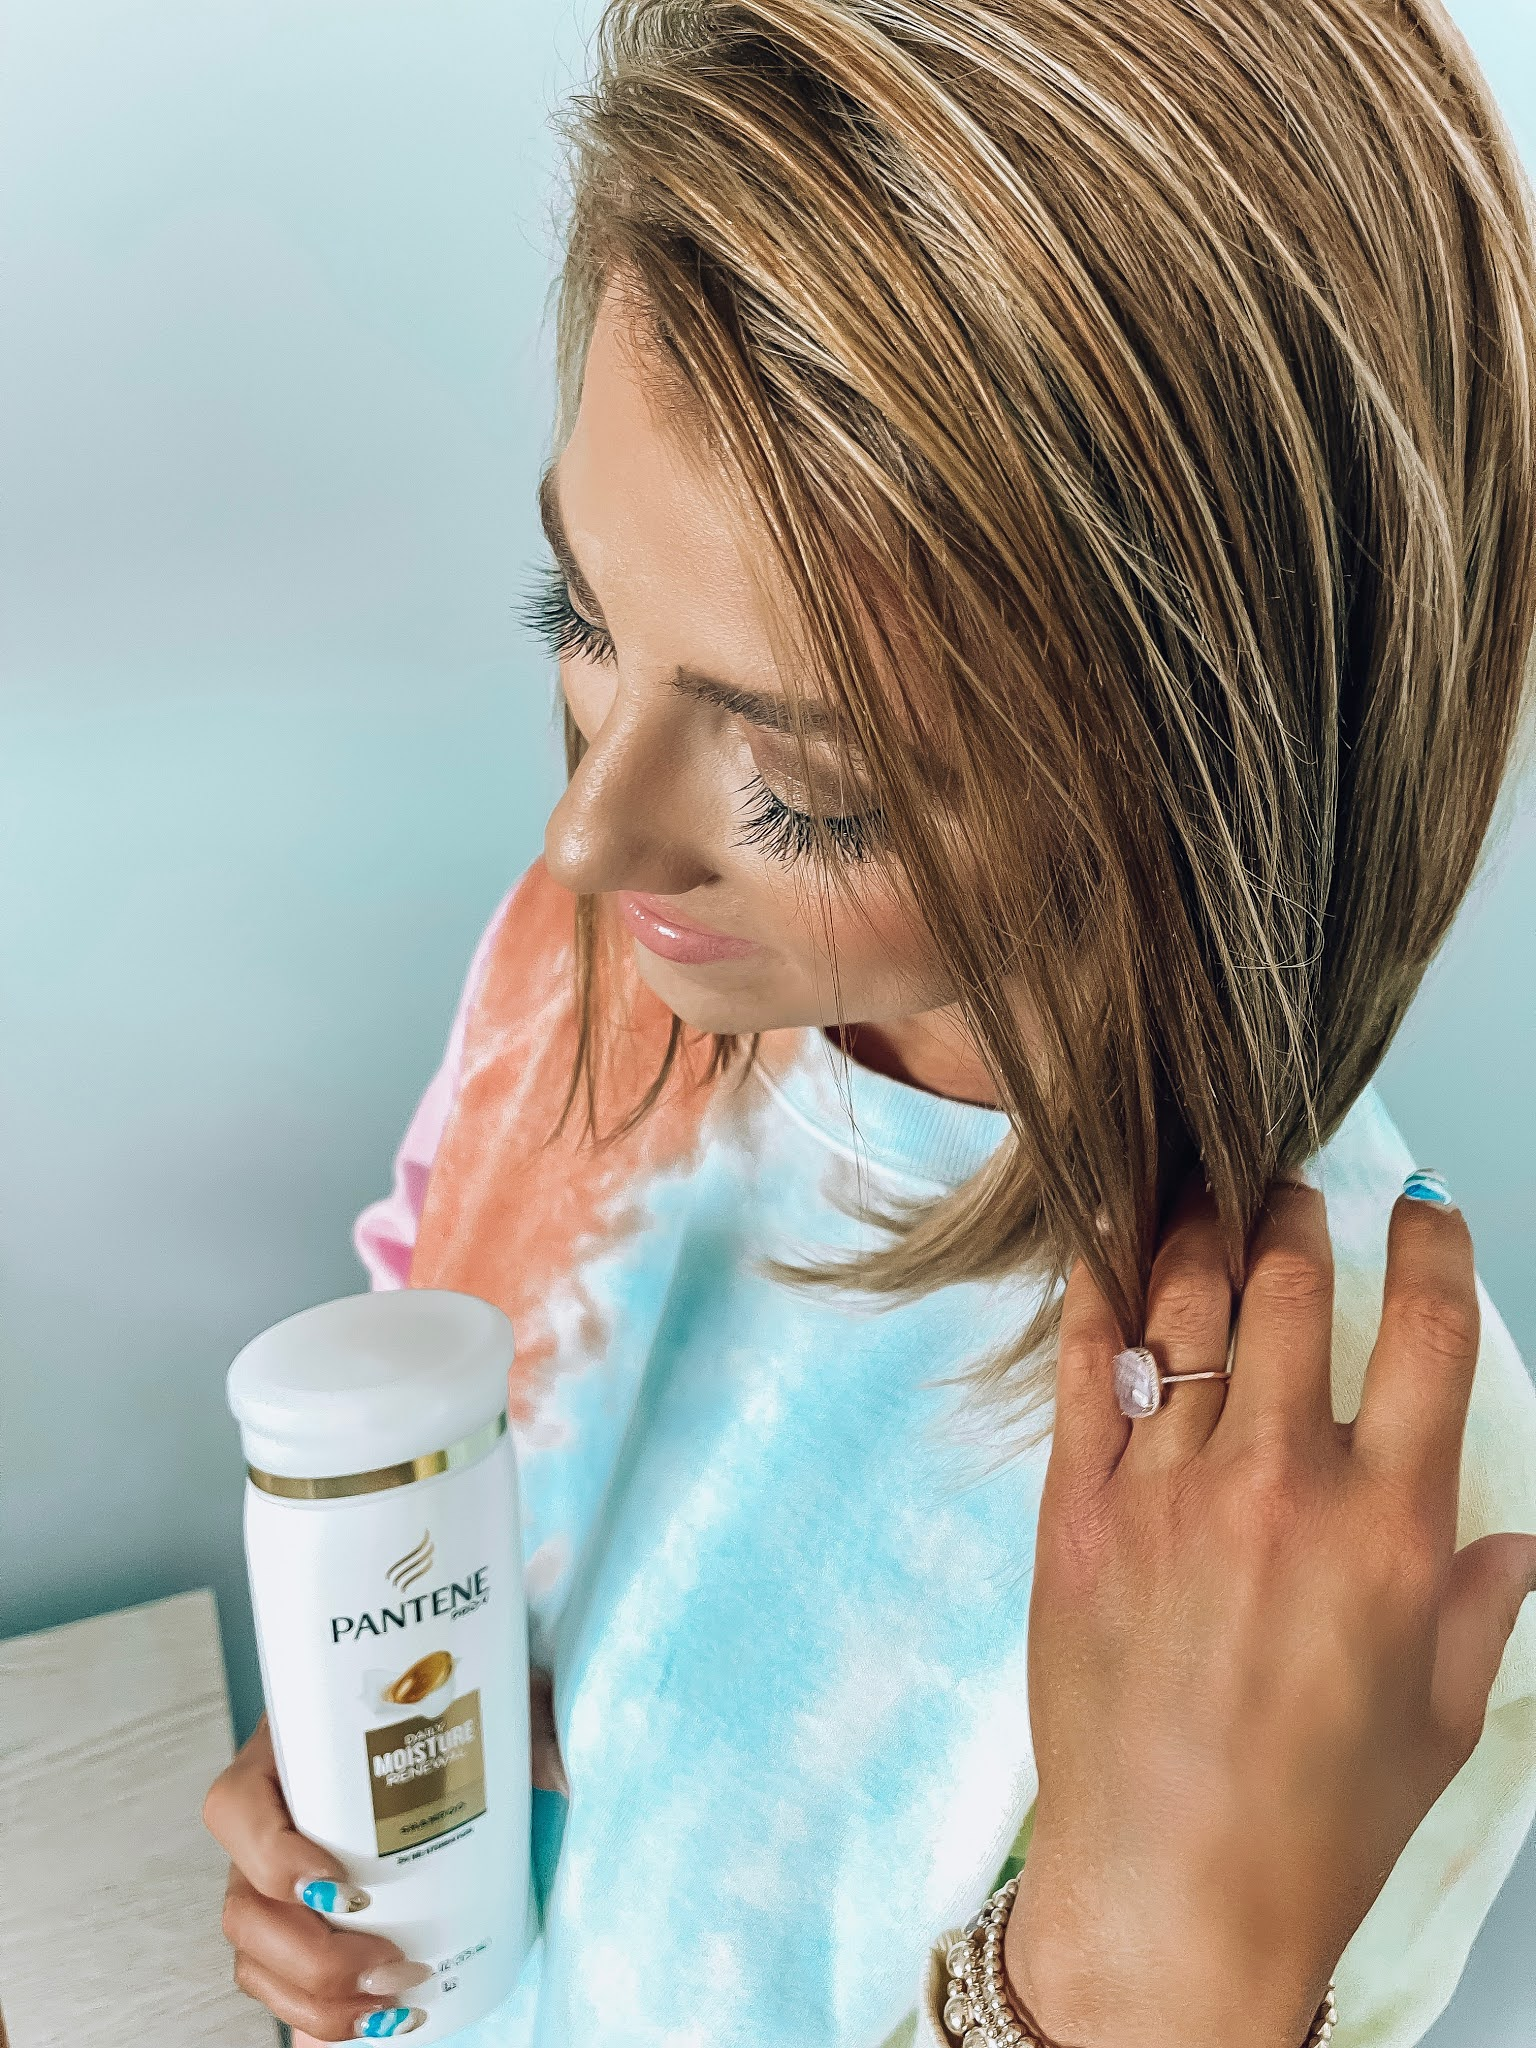 To The (Hair) Rescue With Pantene : Pantene Miracle Rescue Collection - Something Delightful Blog #DrugstoreHairCare #Pantene #ReverseDamagedHair #AffordableHairCare